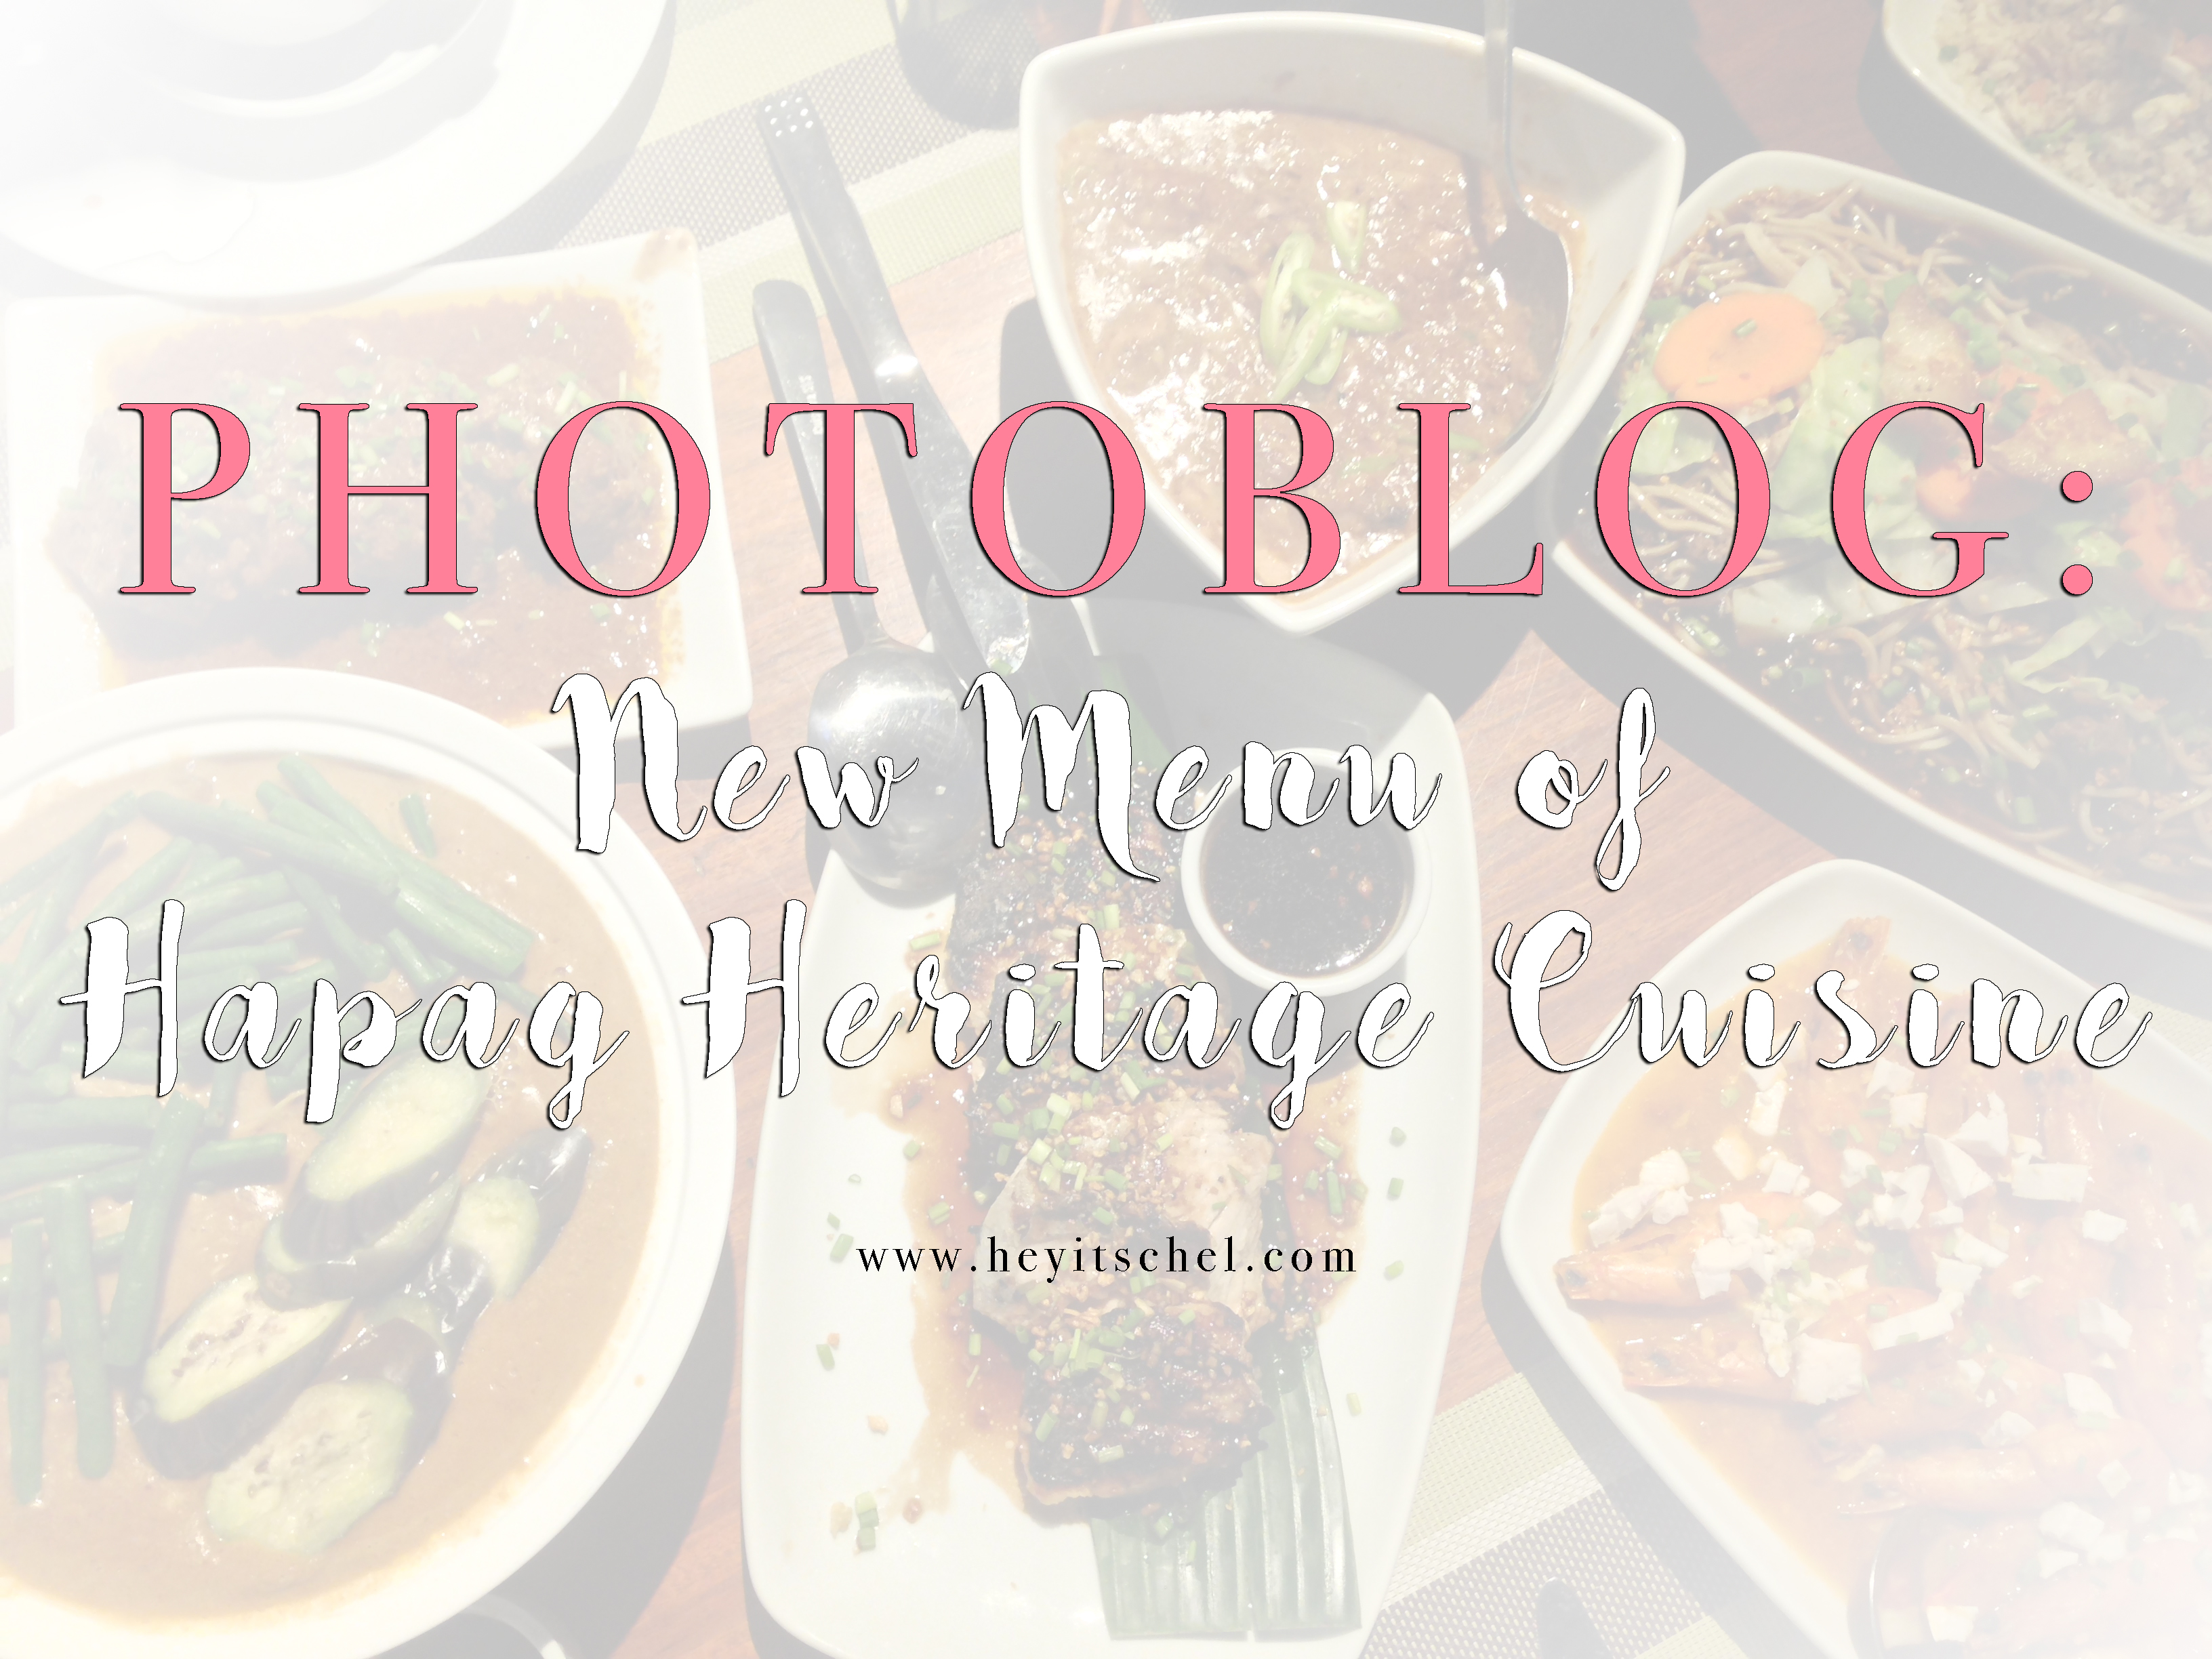 Photoblog: New Menu of Hapag Heritage Cuisine